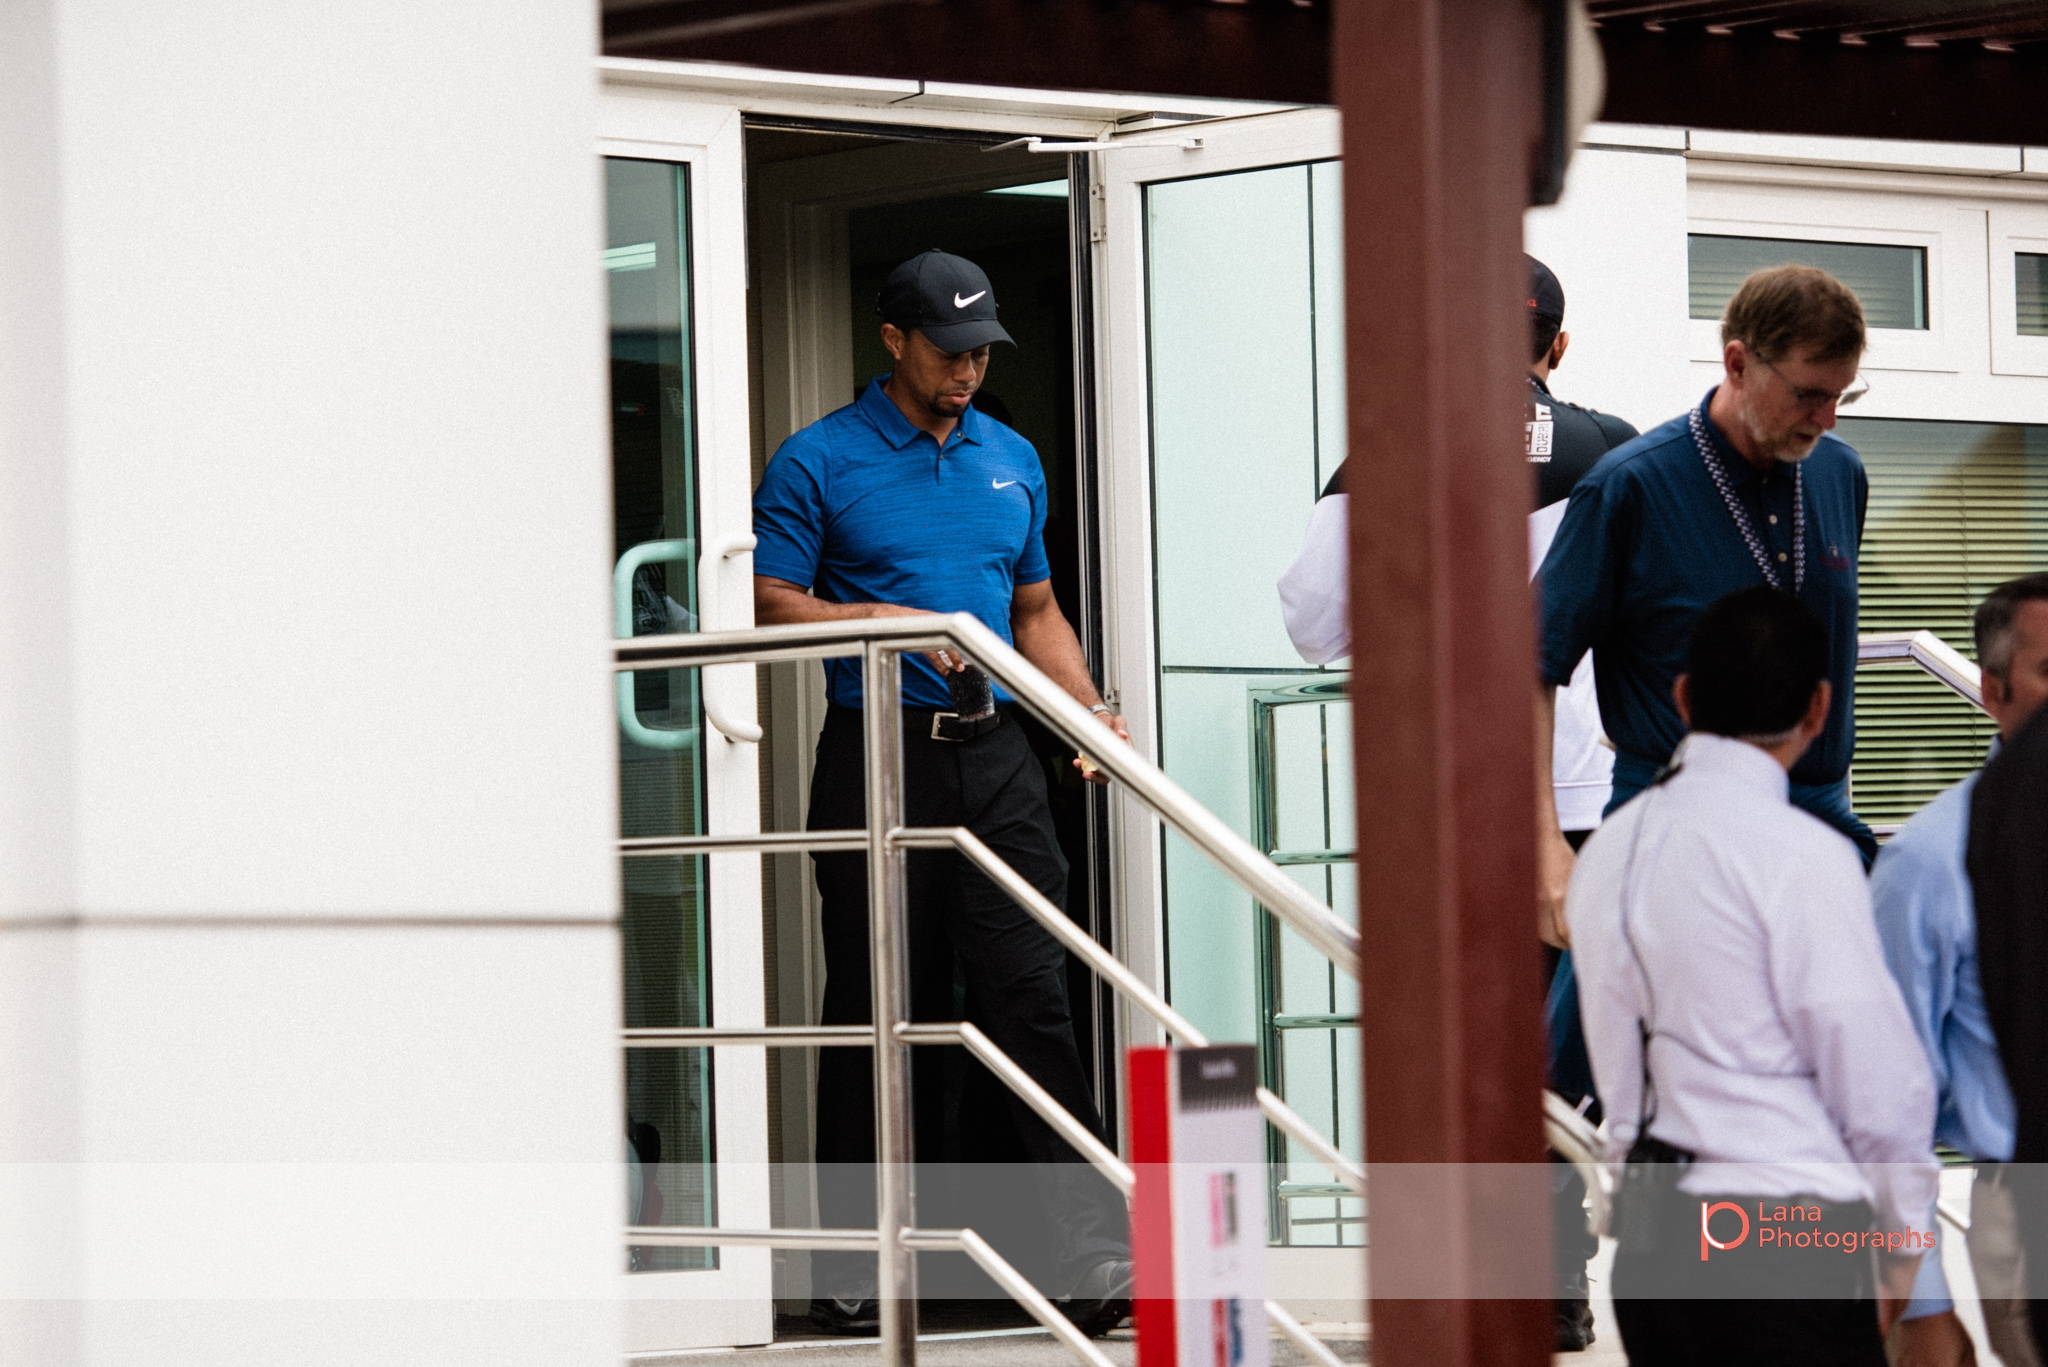 Tiger Woods leaves the organizers office during day 1 of the Omega Dubai Desert Classic in February 2017